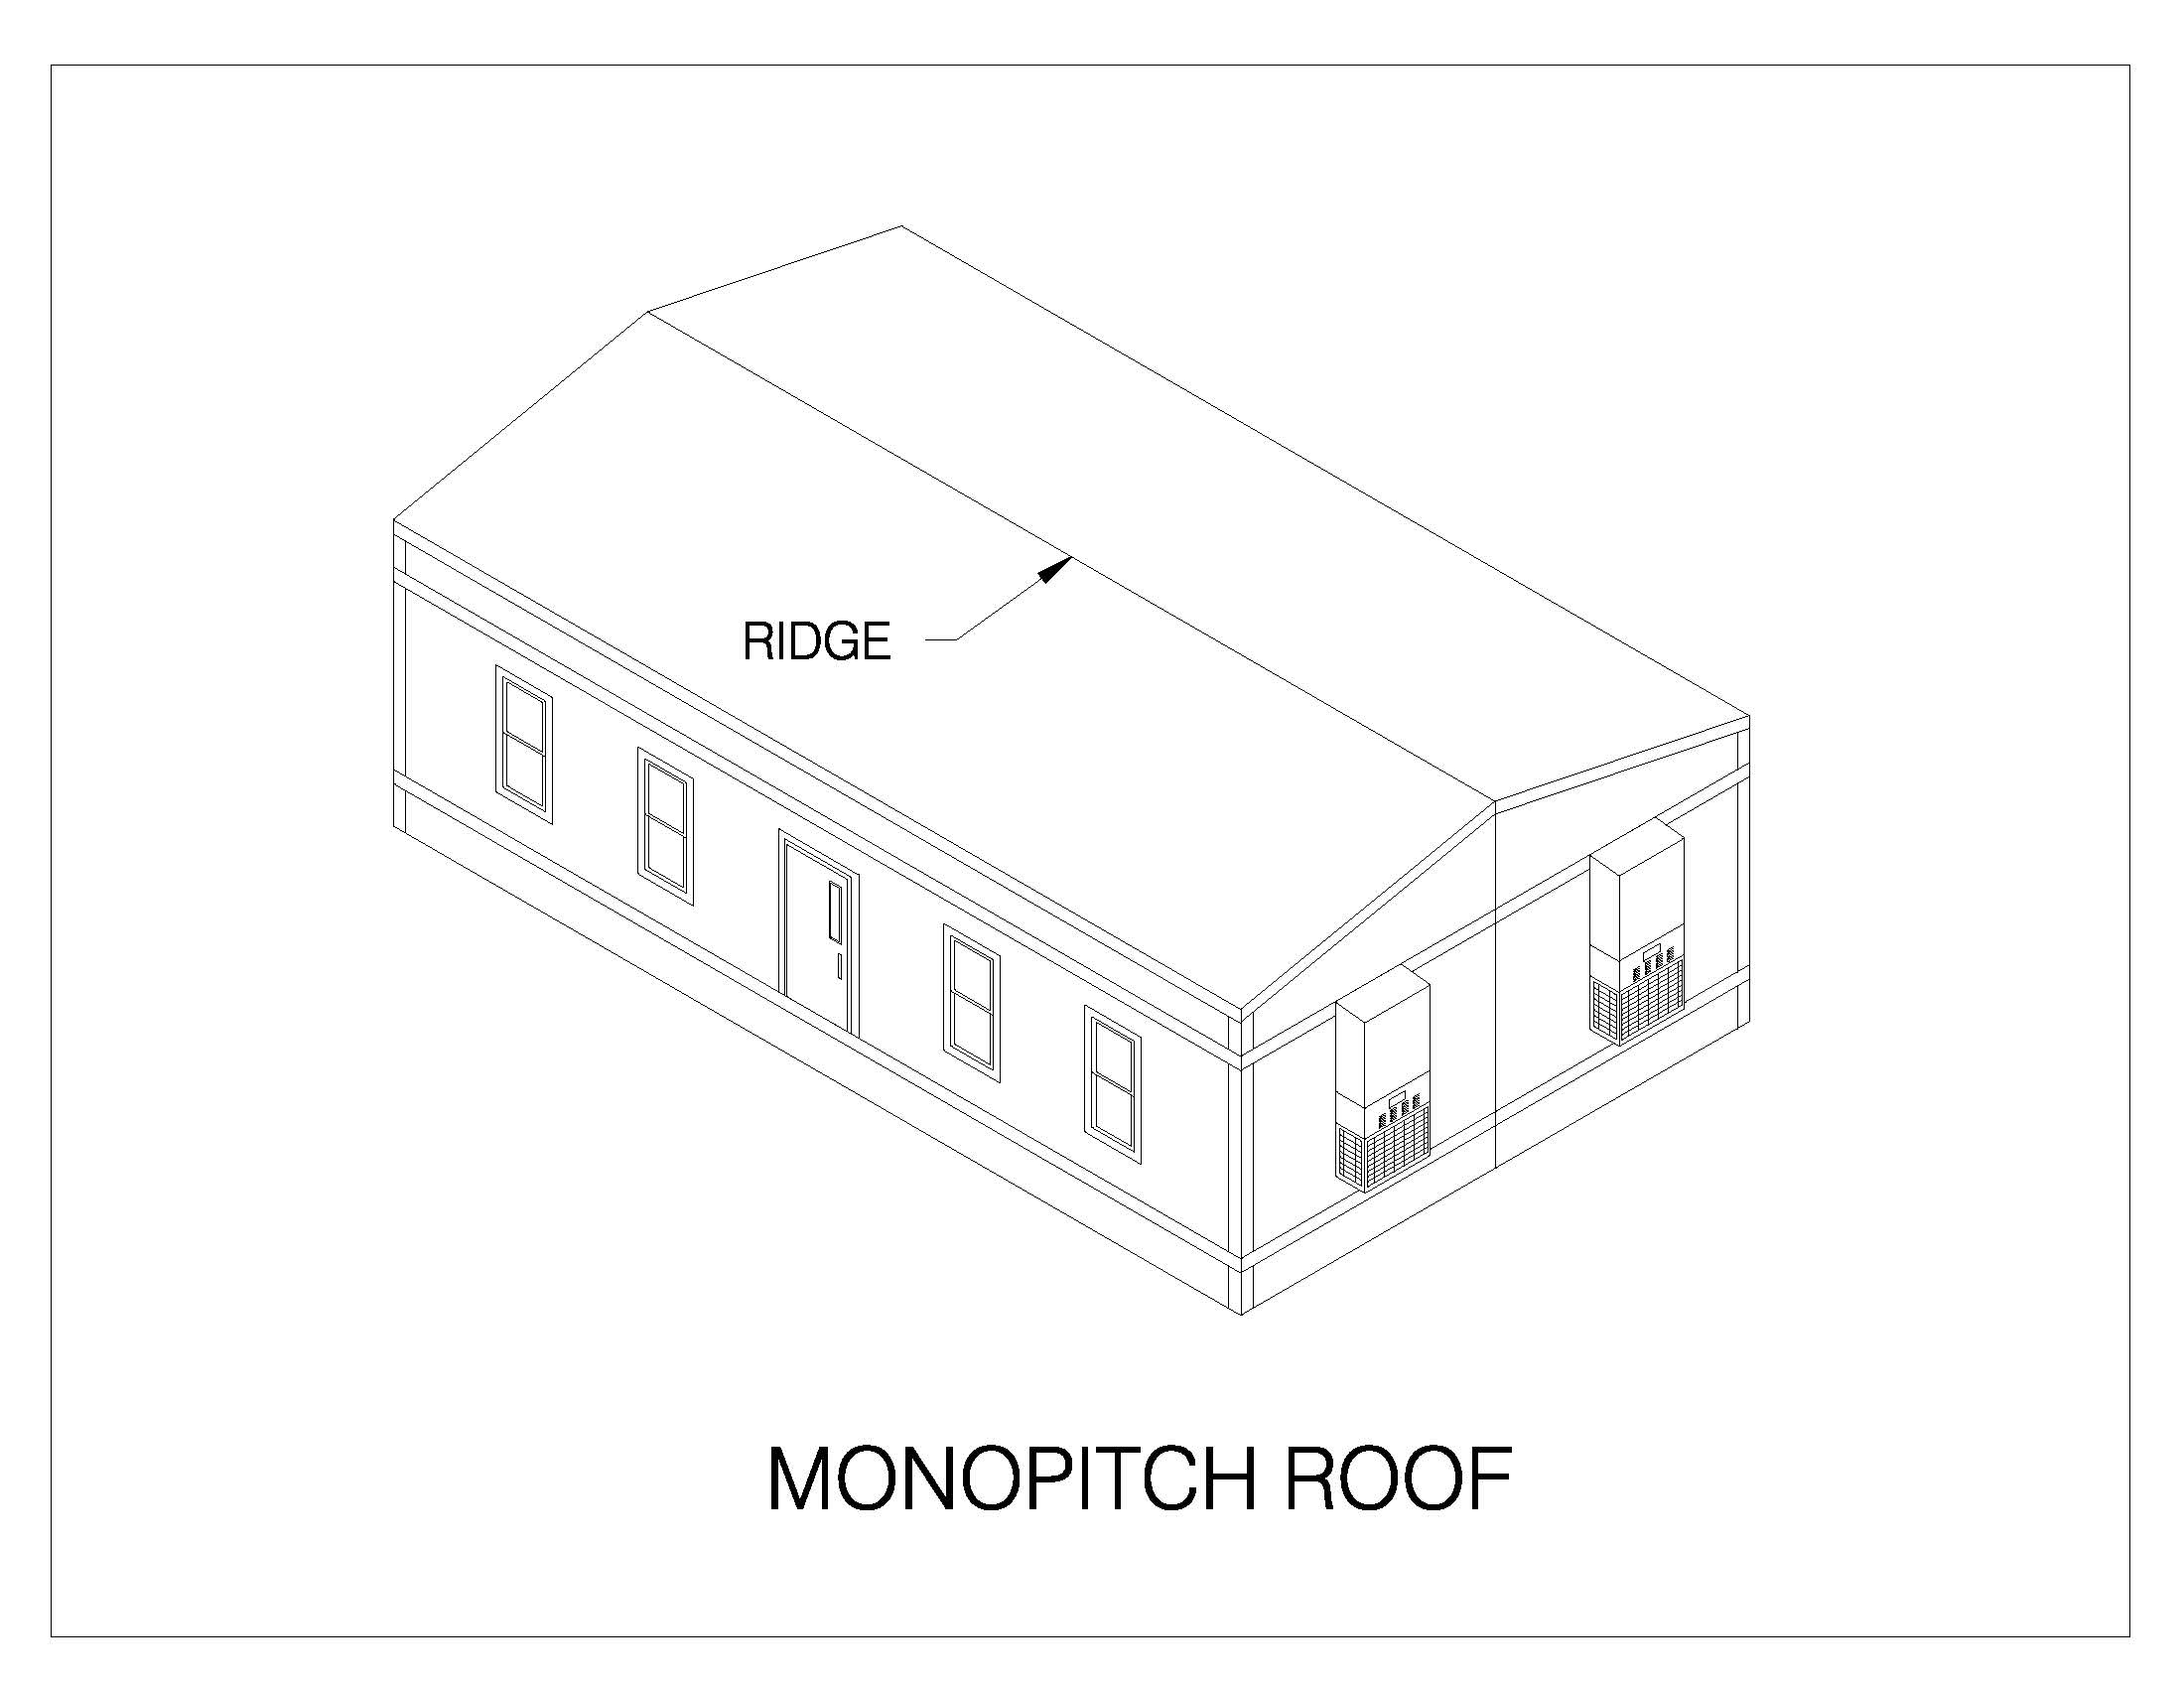 Exterior-Roof-Monopitch Roof